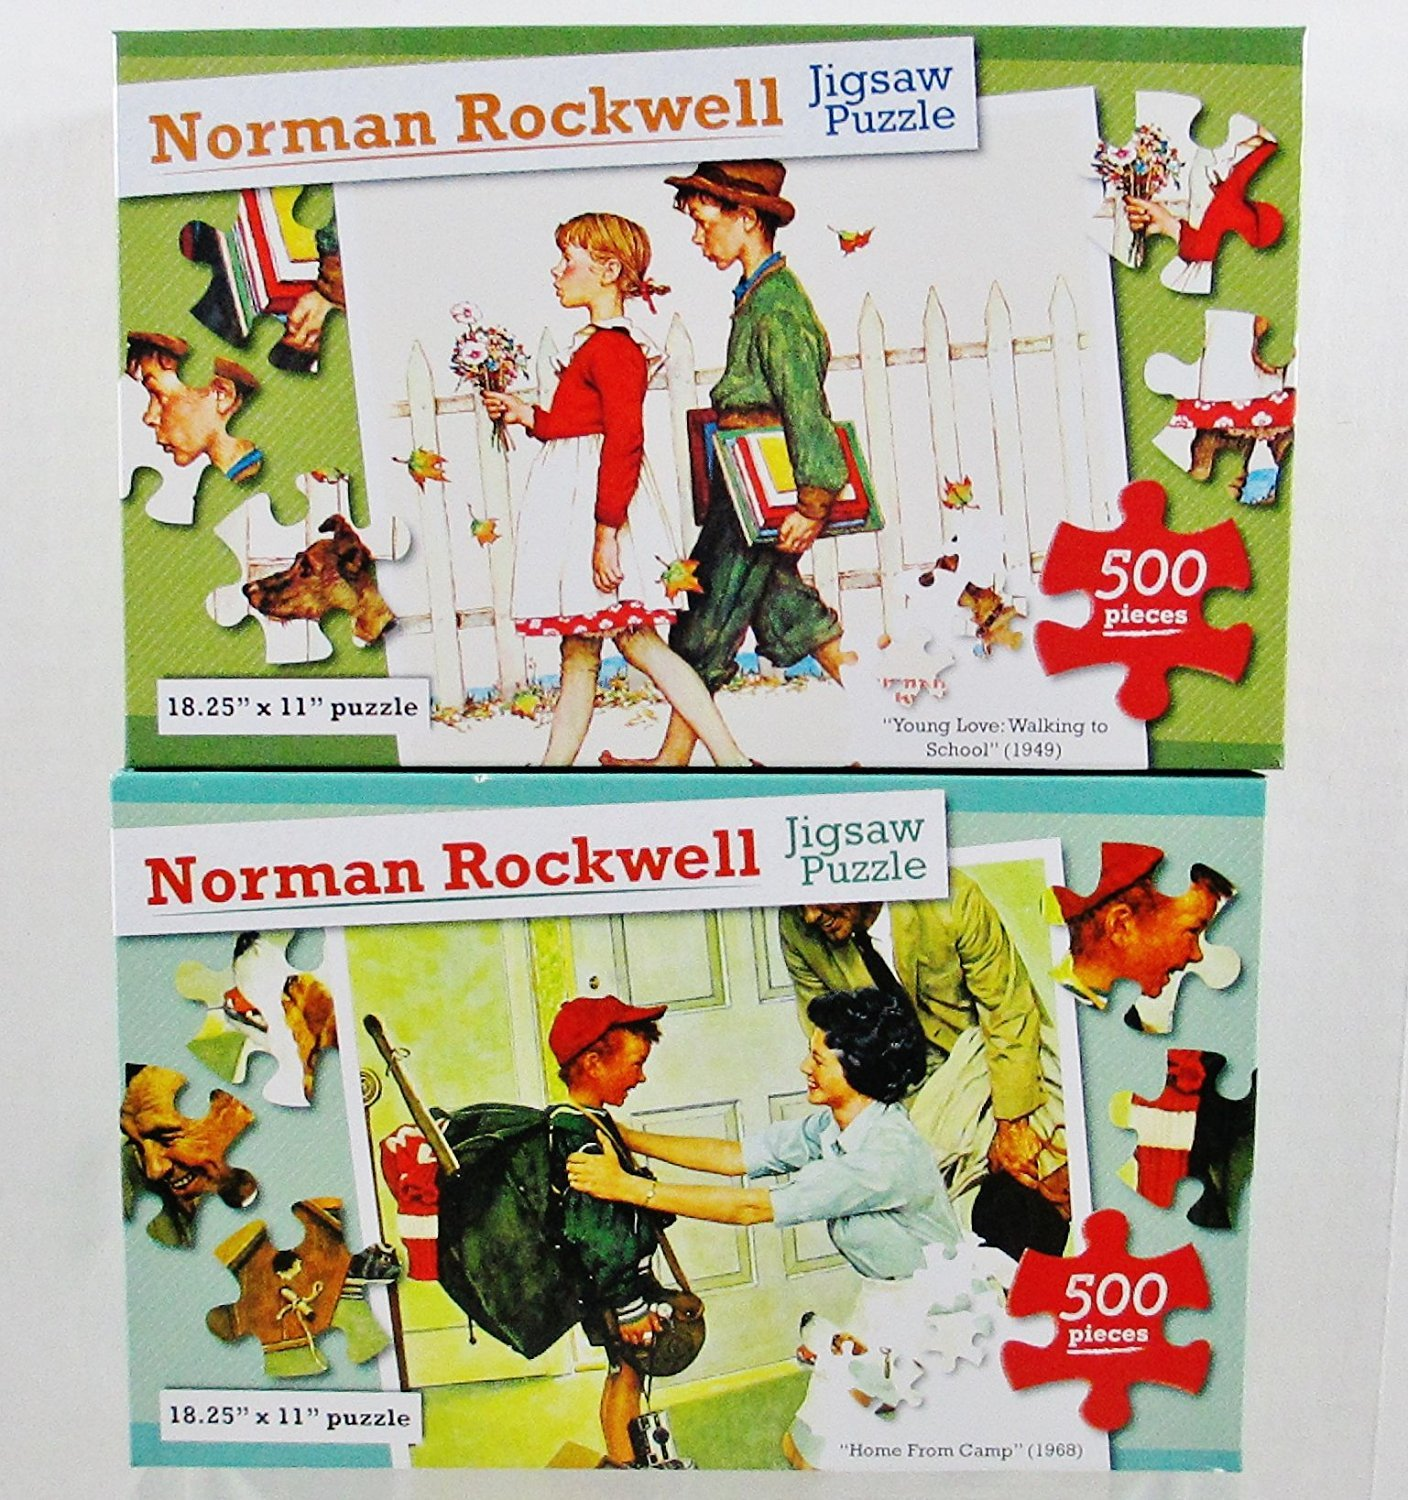 2 Norman Rockwell 500 Piece Puzzles - Home From Camp (1968) and Young Love: Walking to School (1949)